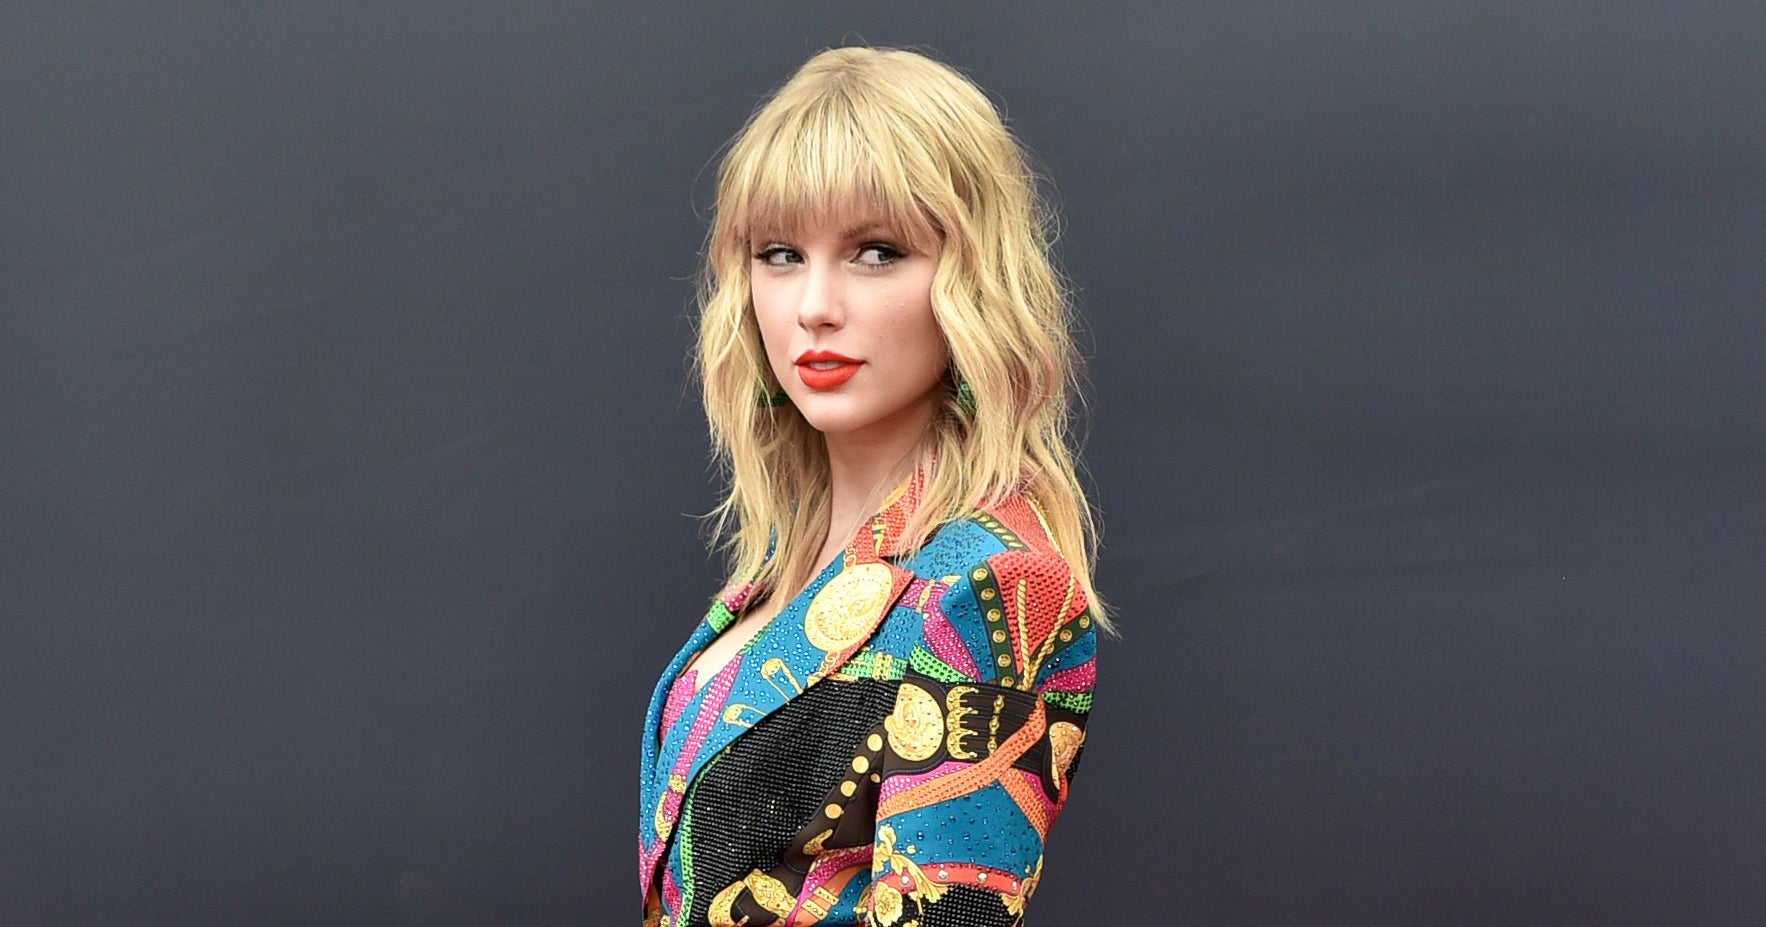 Taylor Swift Will Reportedly Sit Out Grammy Awards & Performance In Wake Of Allegations